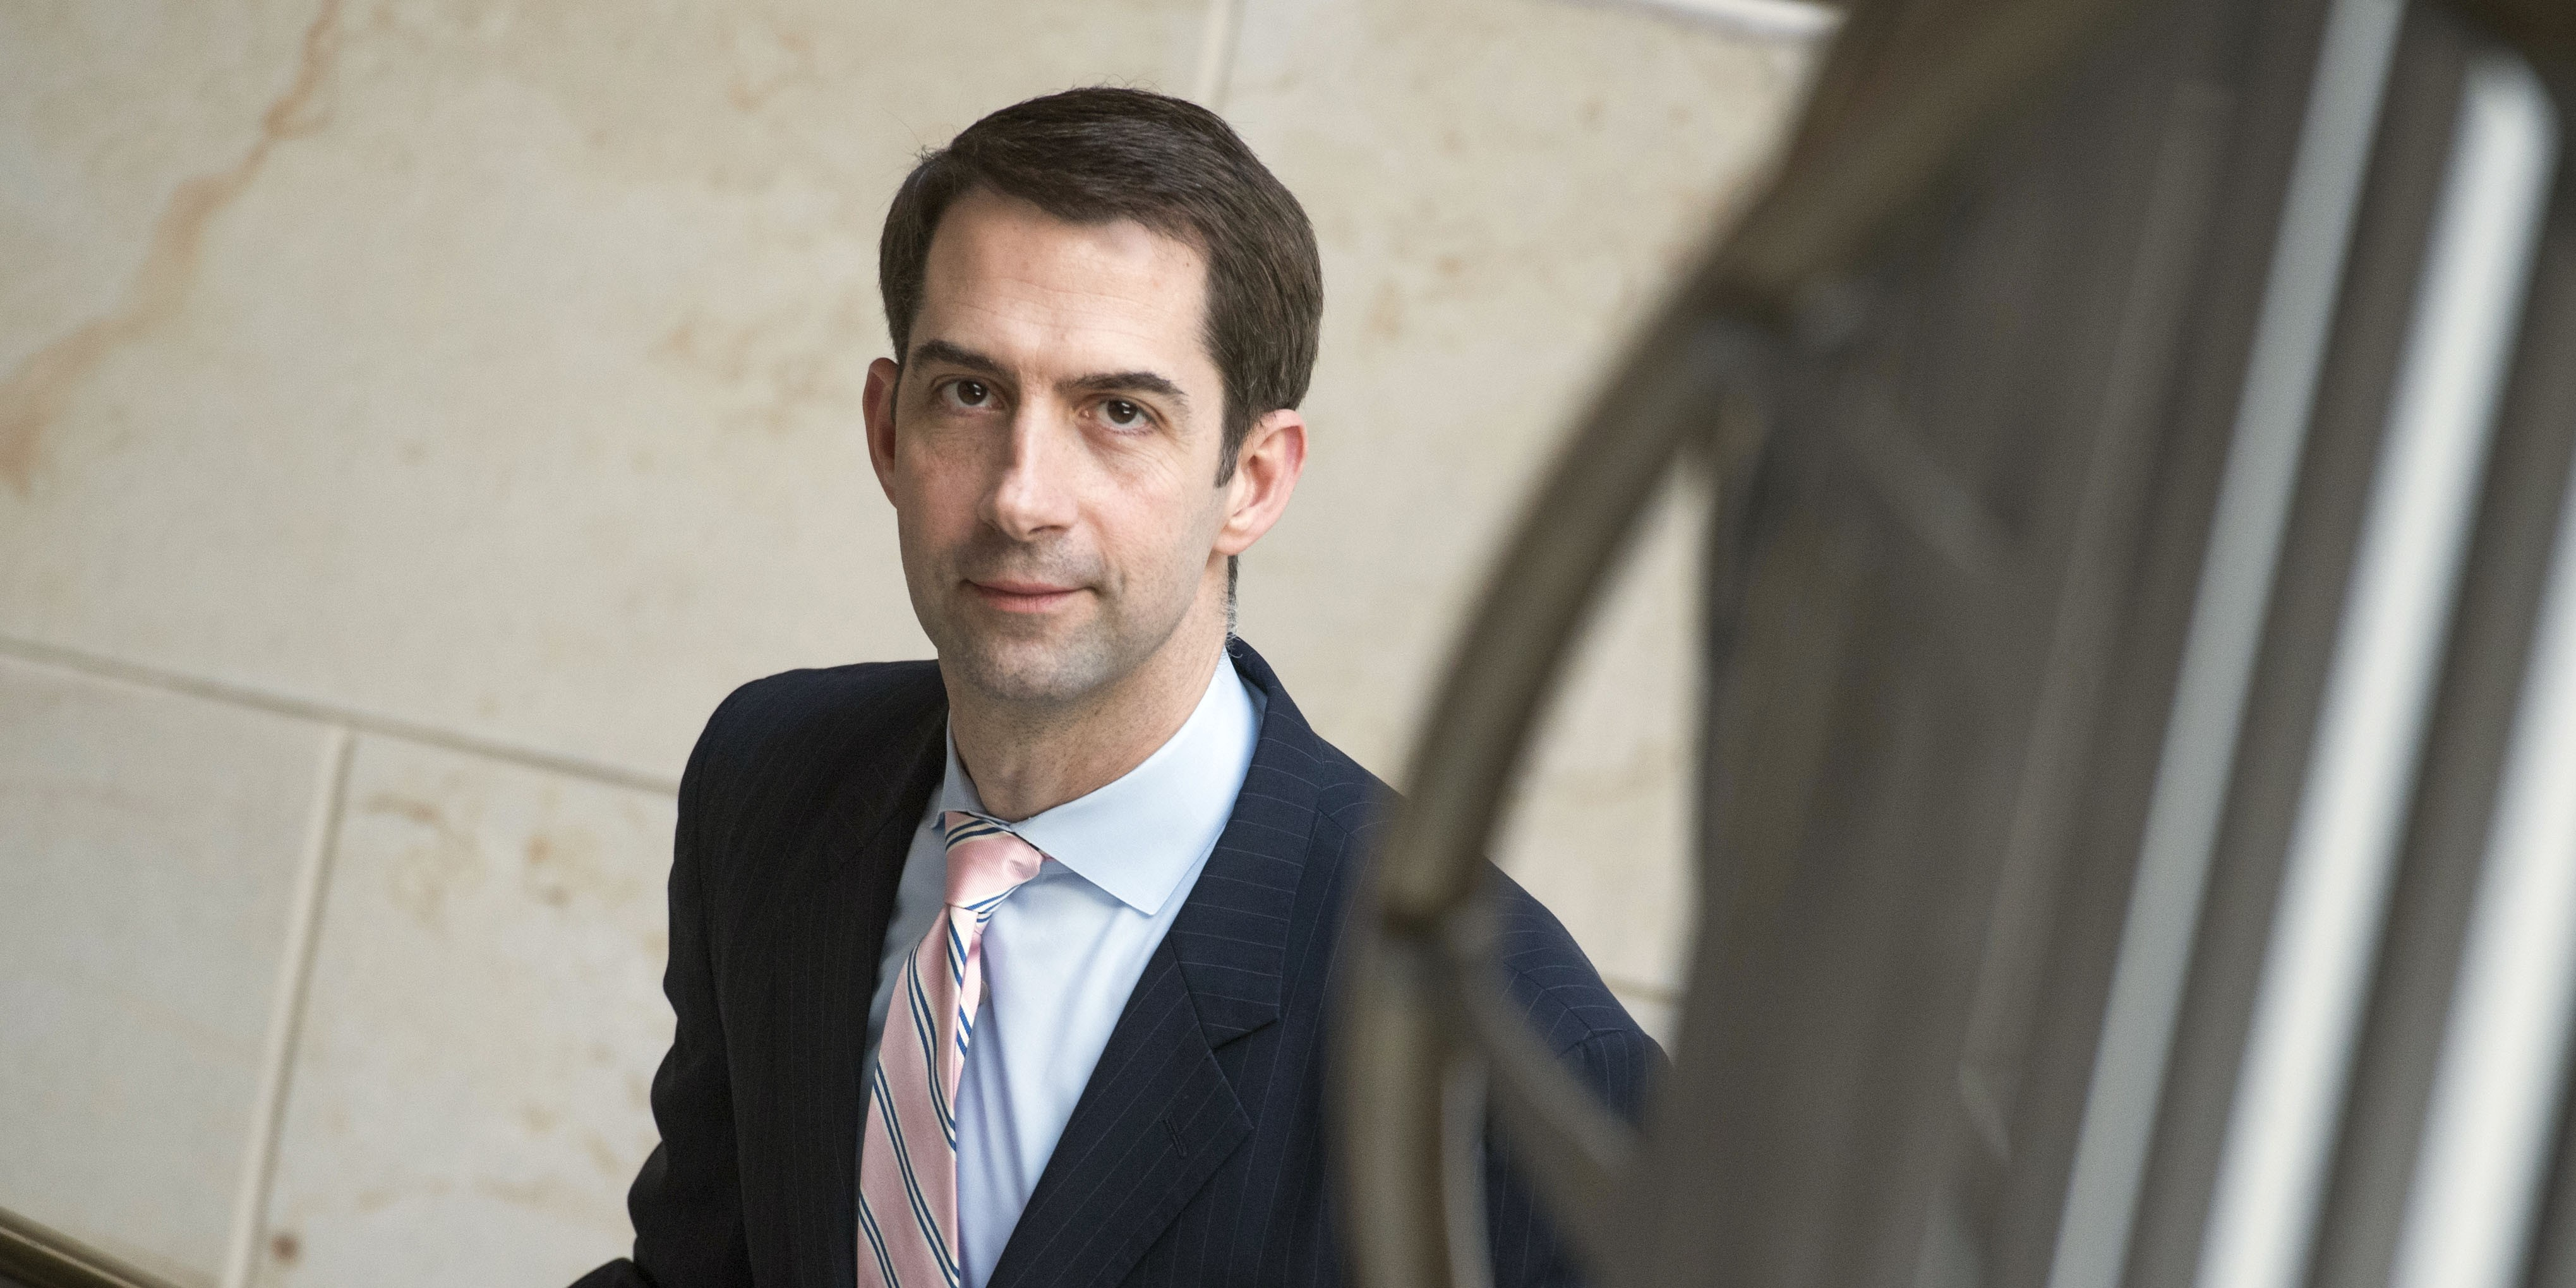 UNITED STATES - MAY 18: Sen. Tom Cotton, R-Ark., leaves a briefing with Deputy Attorney General Rod Rosenstein in the Capitol Visitor Center on the investigation of President Trump's campaign ties to Russia on May 18, 2017. (Photo By Tom Williams/CQ Roll Call) (CQ Roll Call via AP Images)